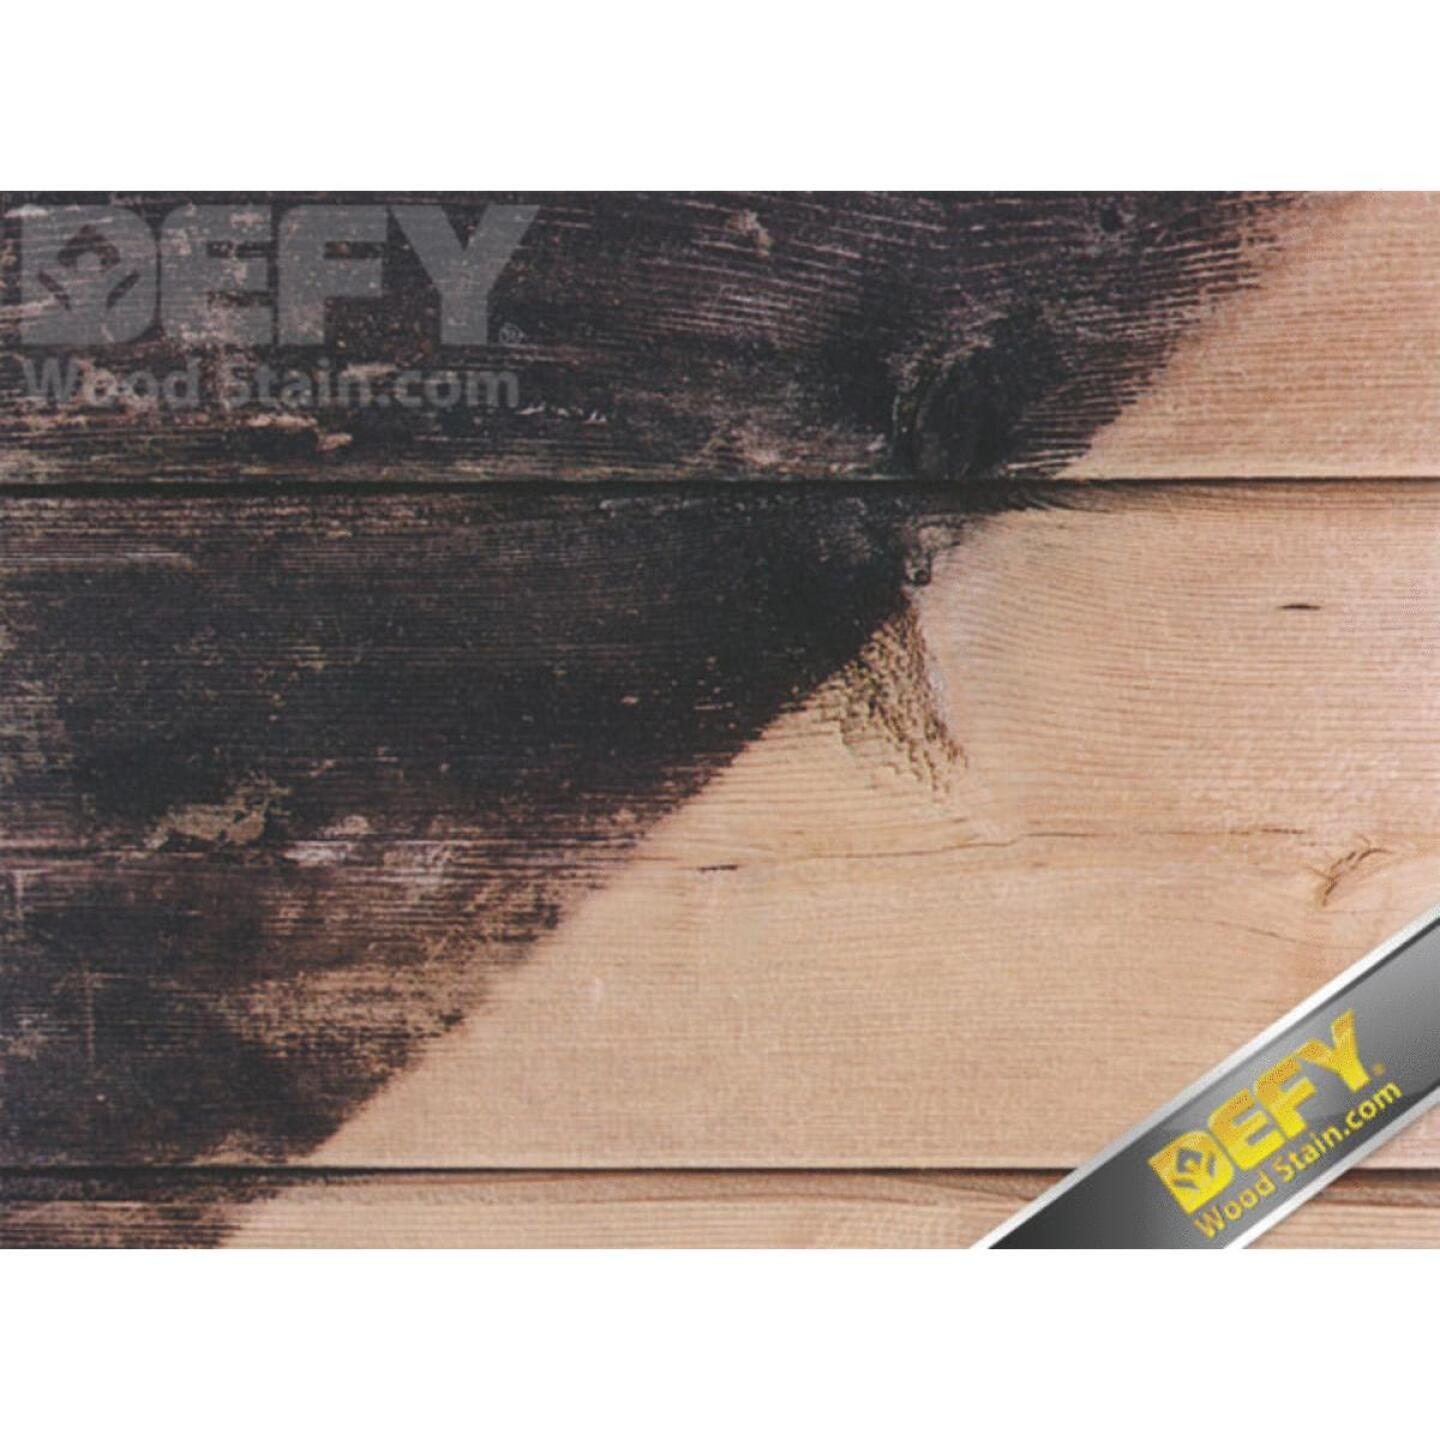 DEFY 2.25 Lb. Wood Cleaner Image 5